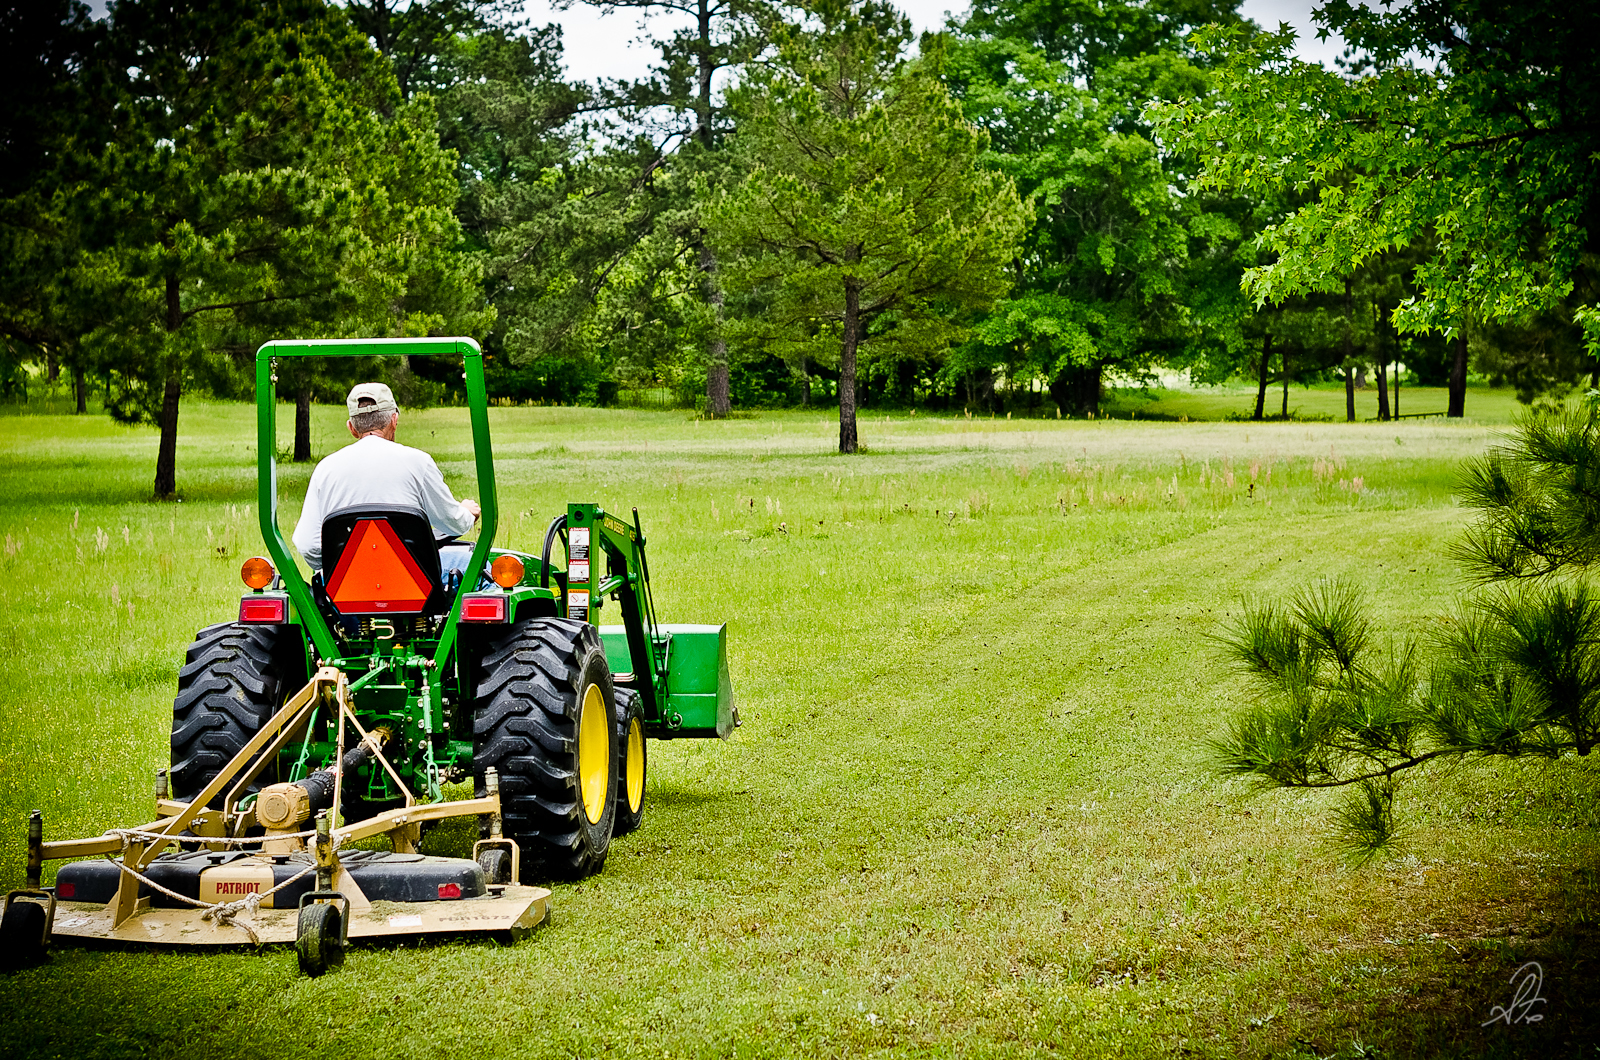 Cutting the Pasture on the John Deere Tractor